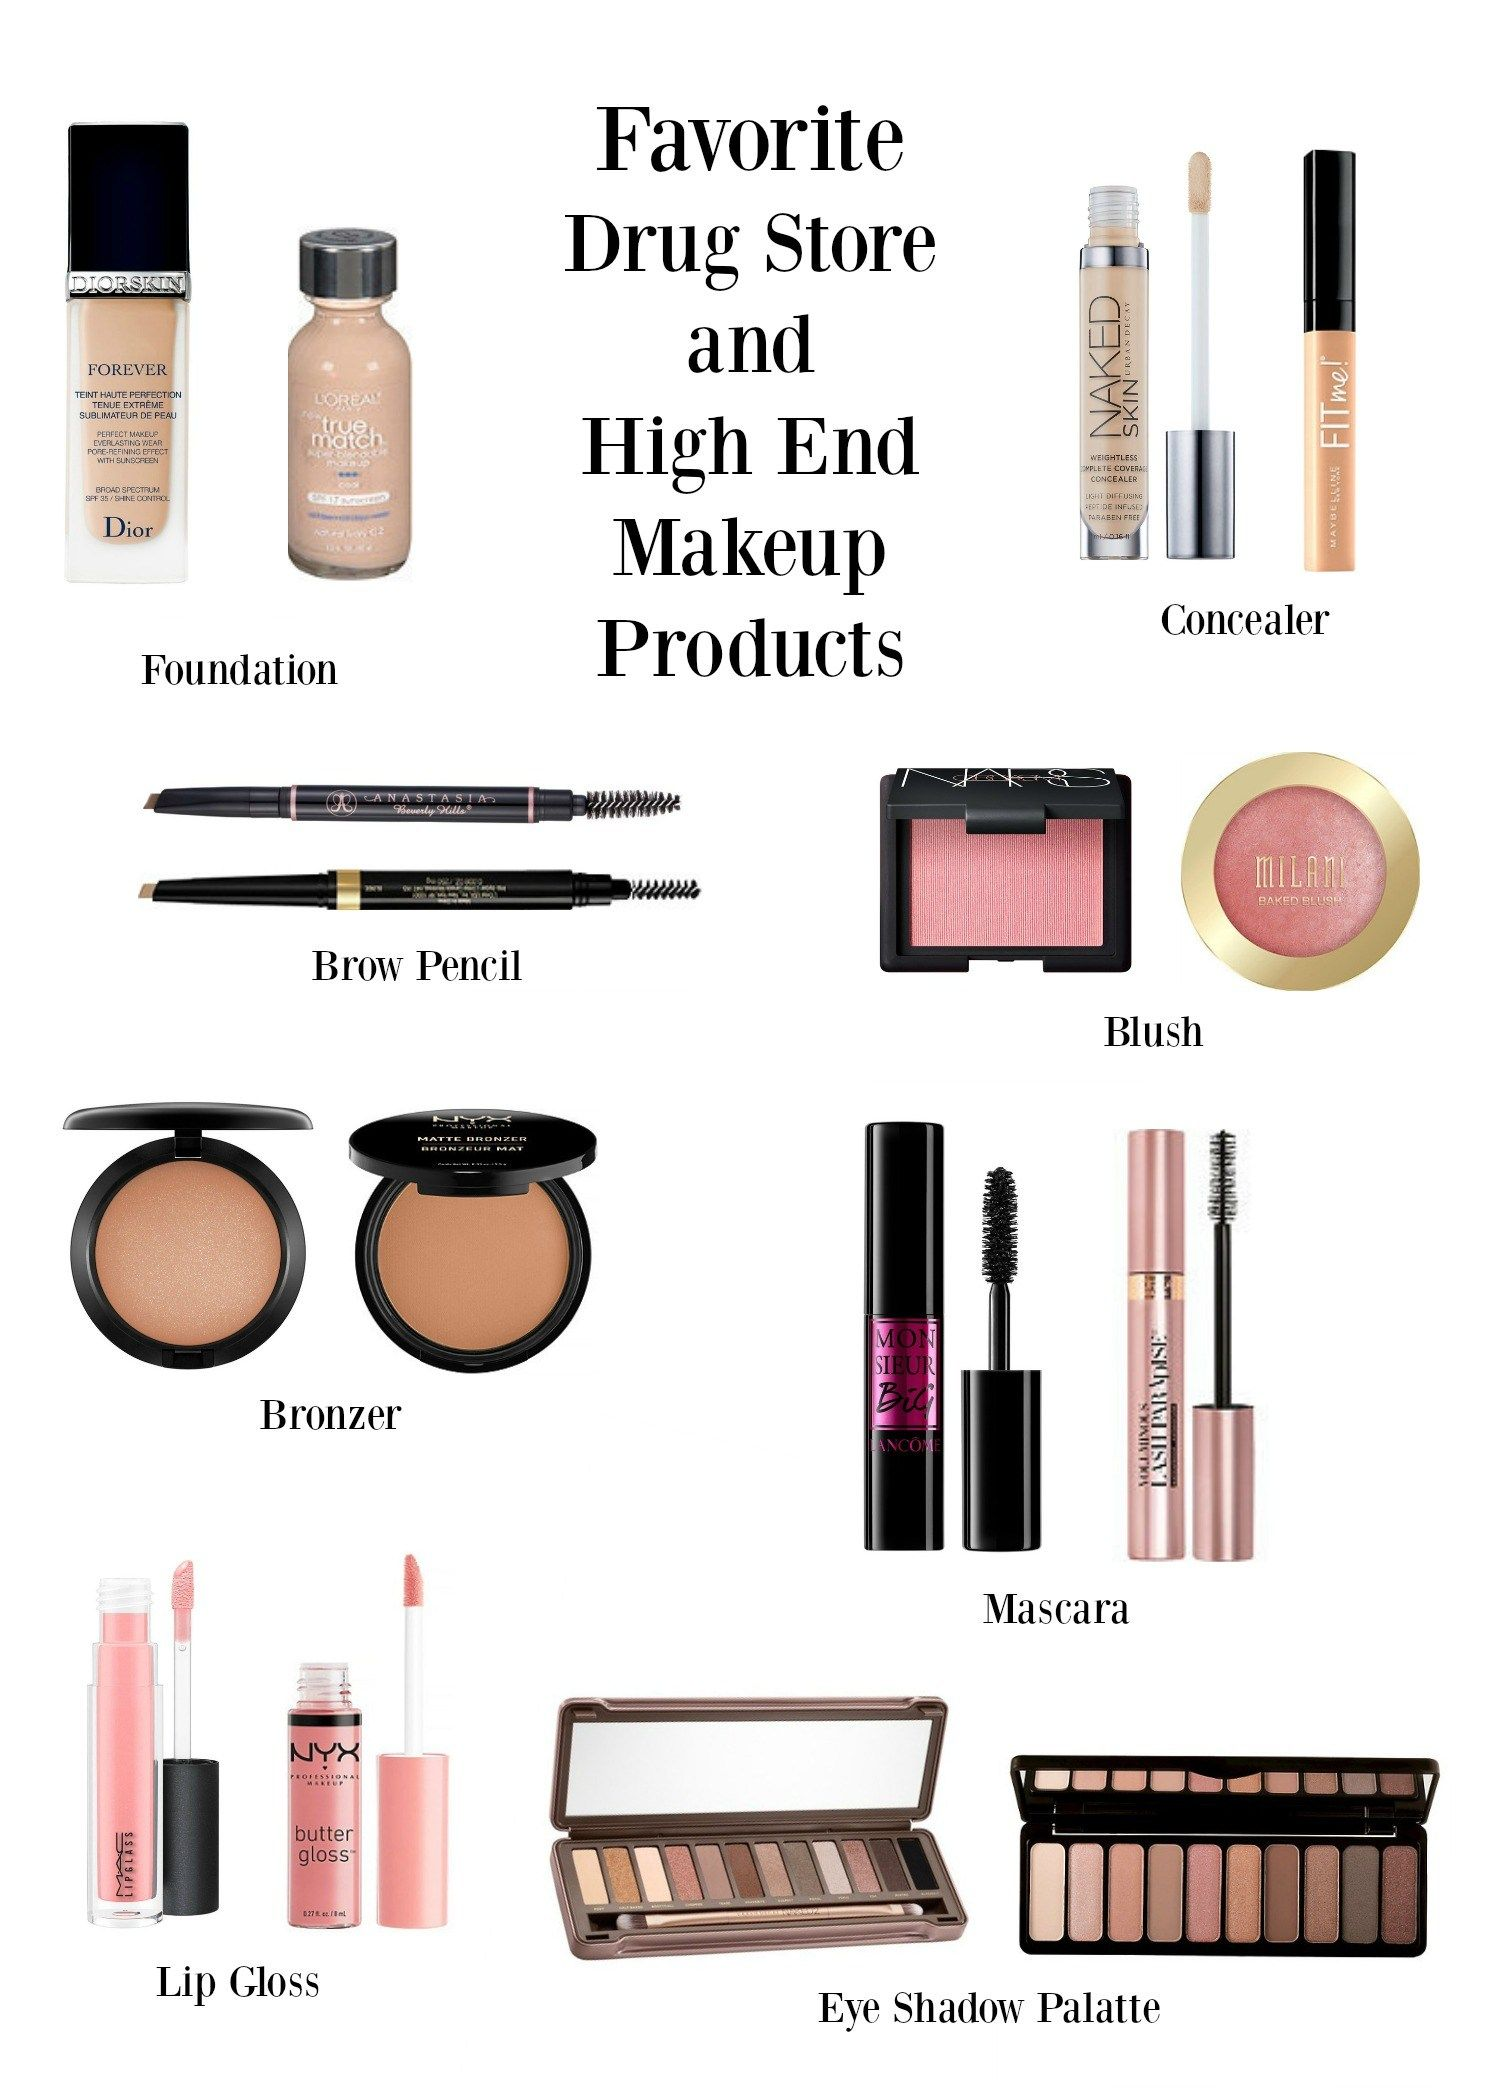 Favorite Drug Store and High End Makeup Products Makeup